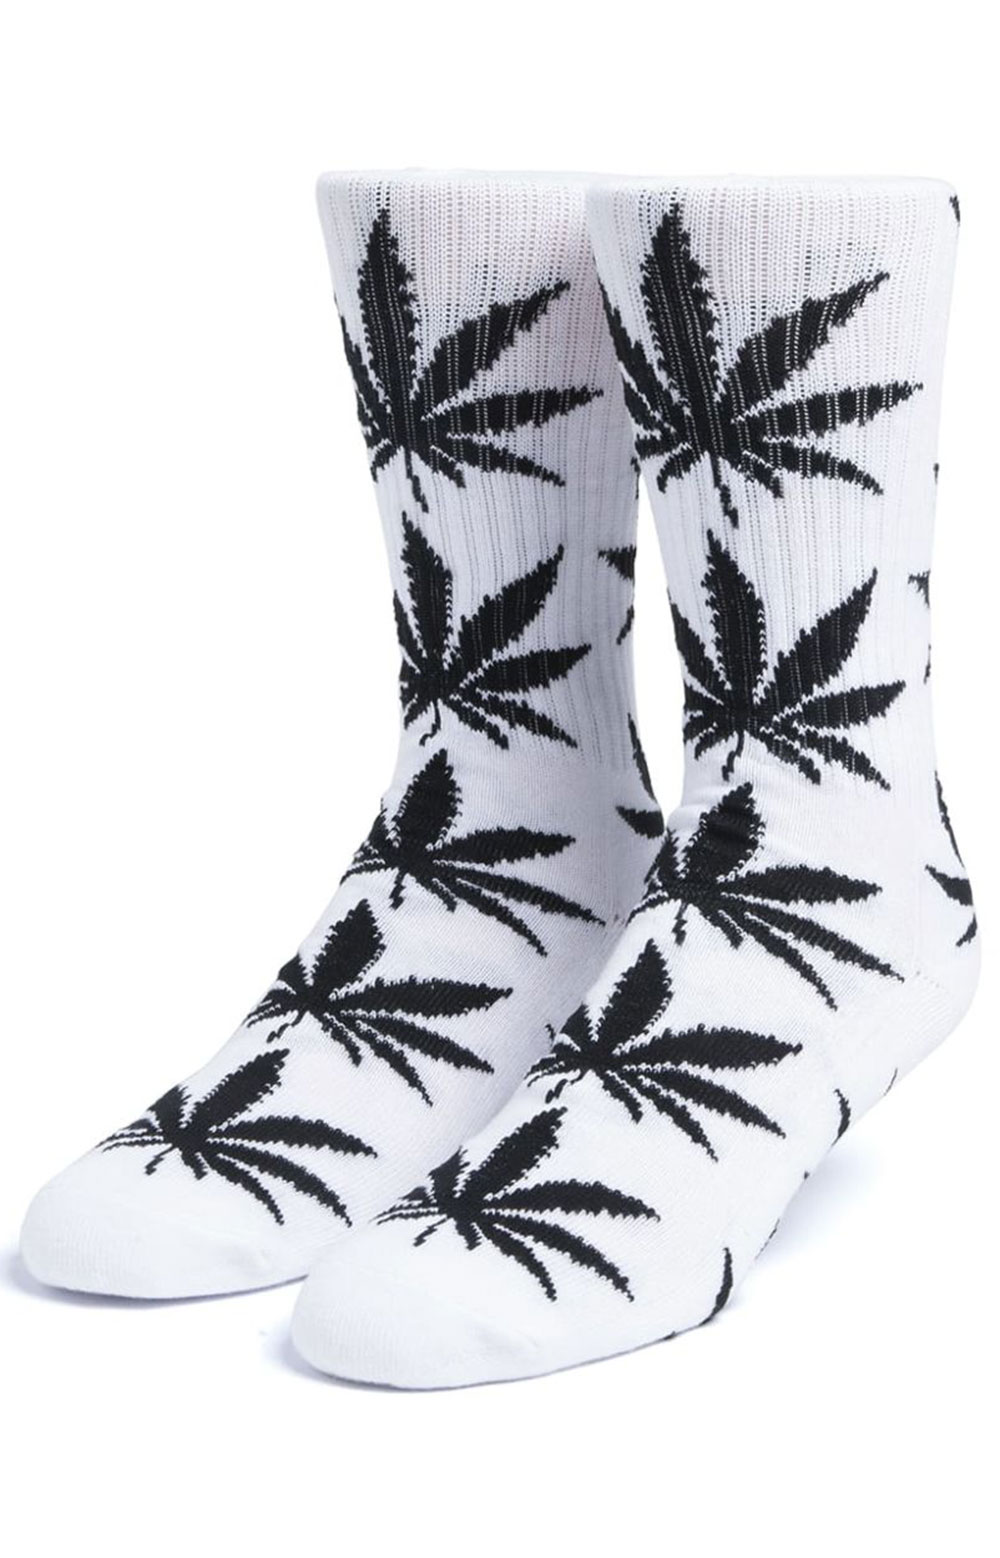 Essentials Plantlife Sock 3 Pack - Black/White/Huf Green  2